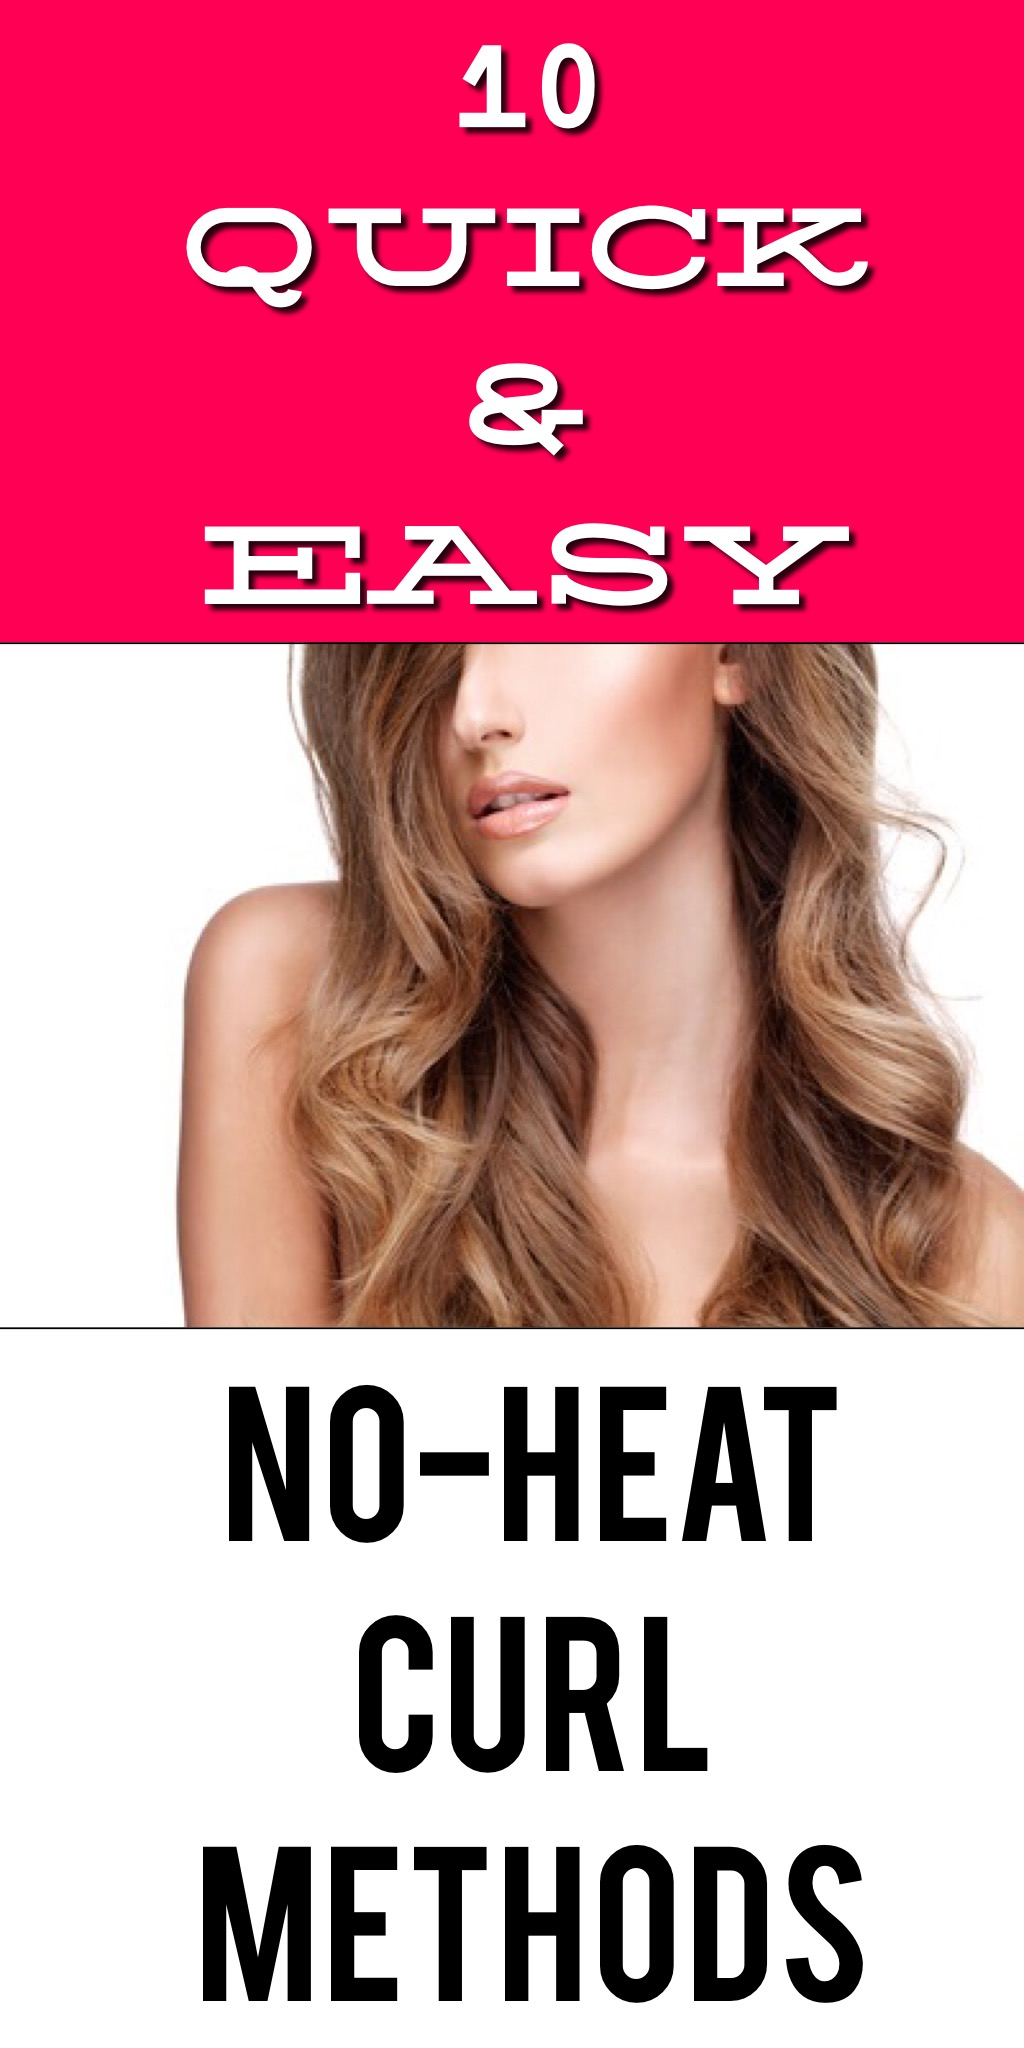 10 Quick and Easy ways to curl your hair without HEAT!